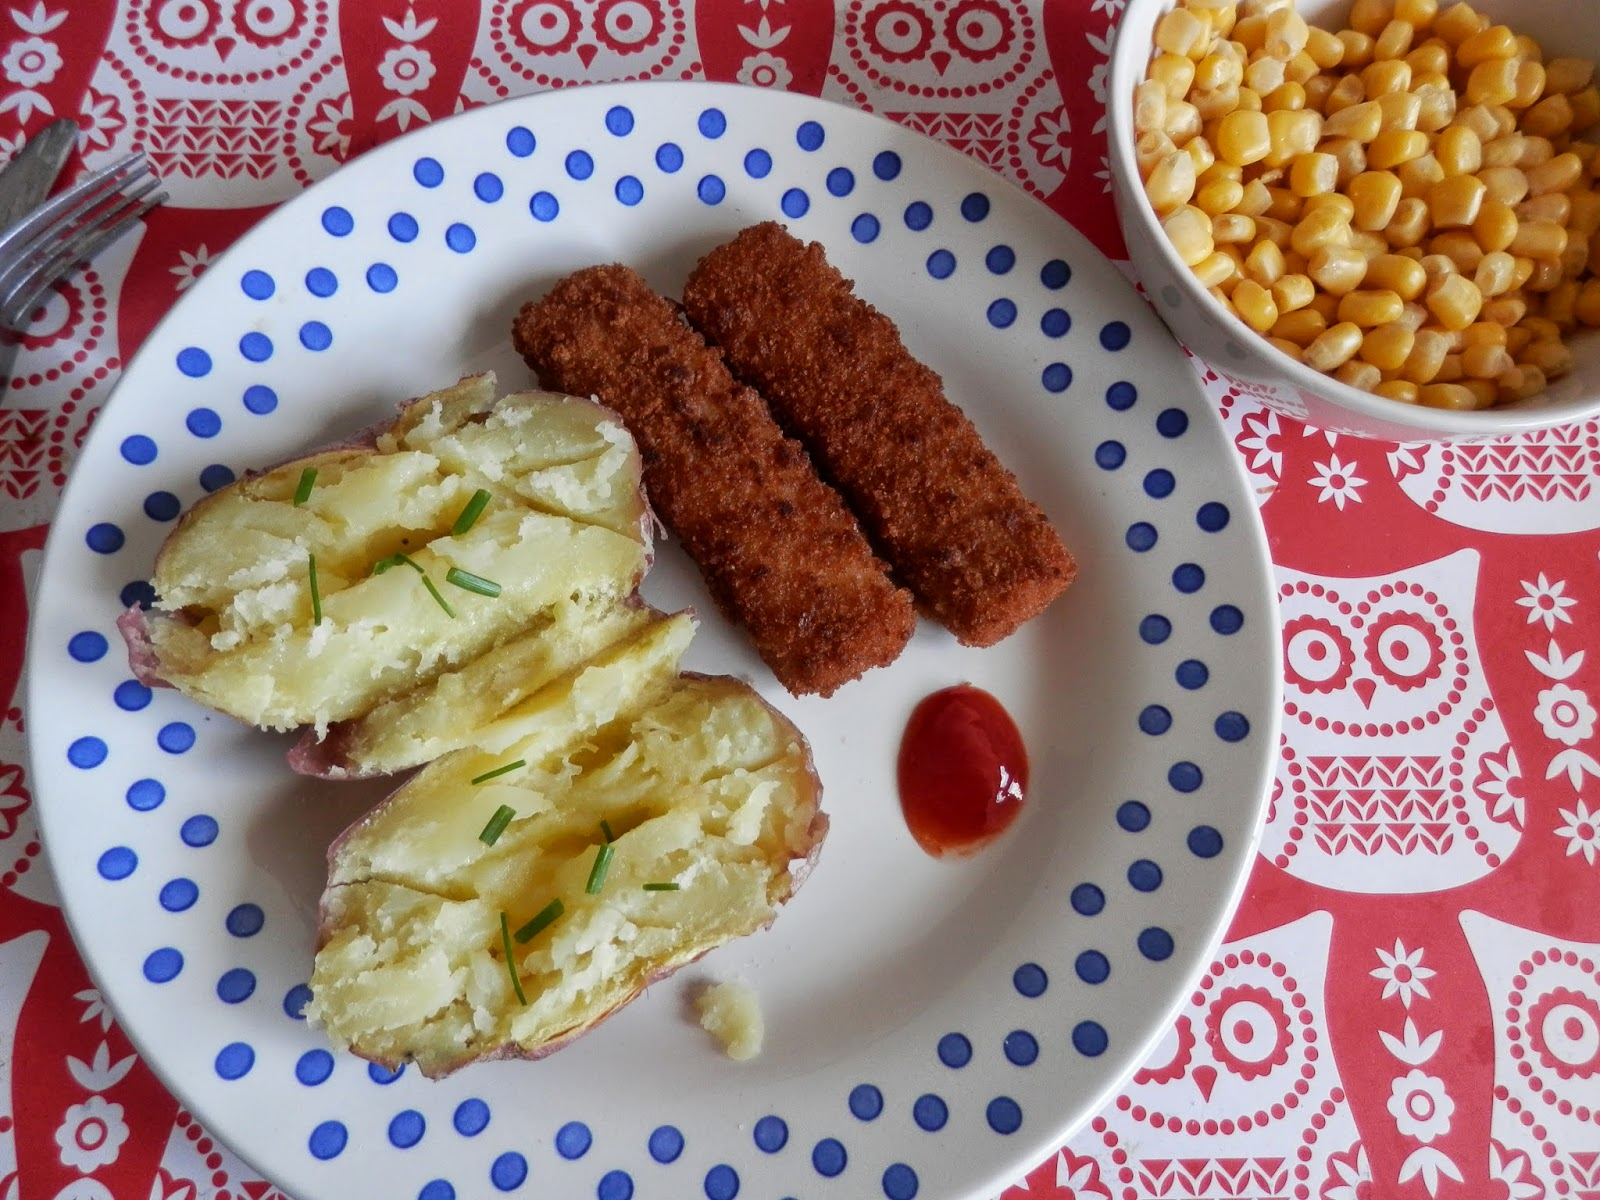 What do vegans eat? VBites Fish-Free Fish Fingers, with a baked potato and sweetcorn.